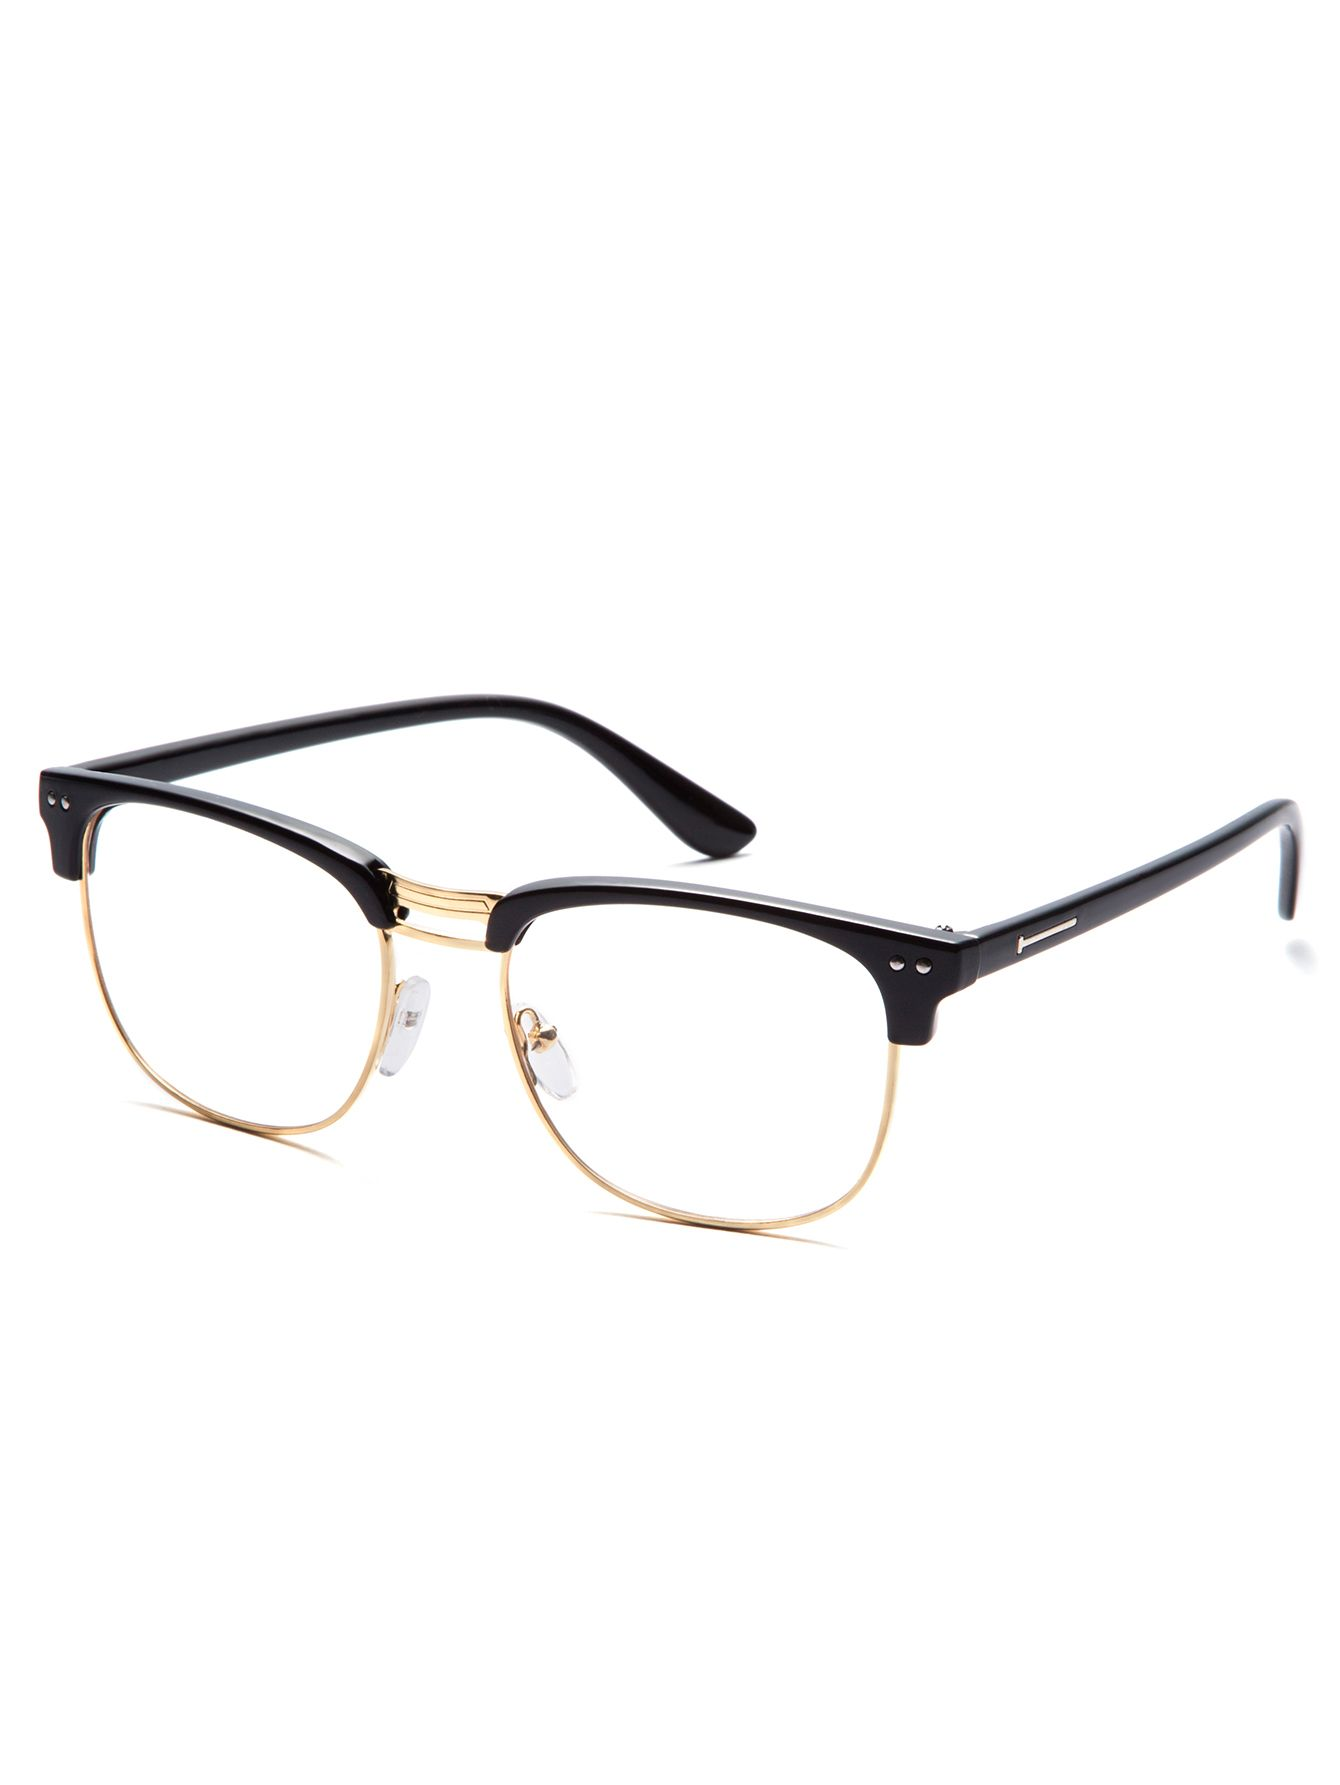 598712200f46 Online shopping for Black Open Frame Gold Trim Glasses from a great  selection of women s fashion clothing   more at MakeMeChic.COM.